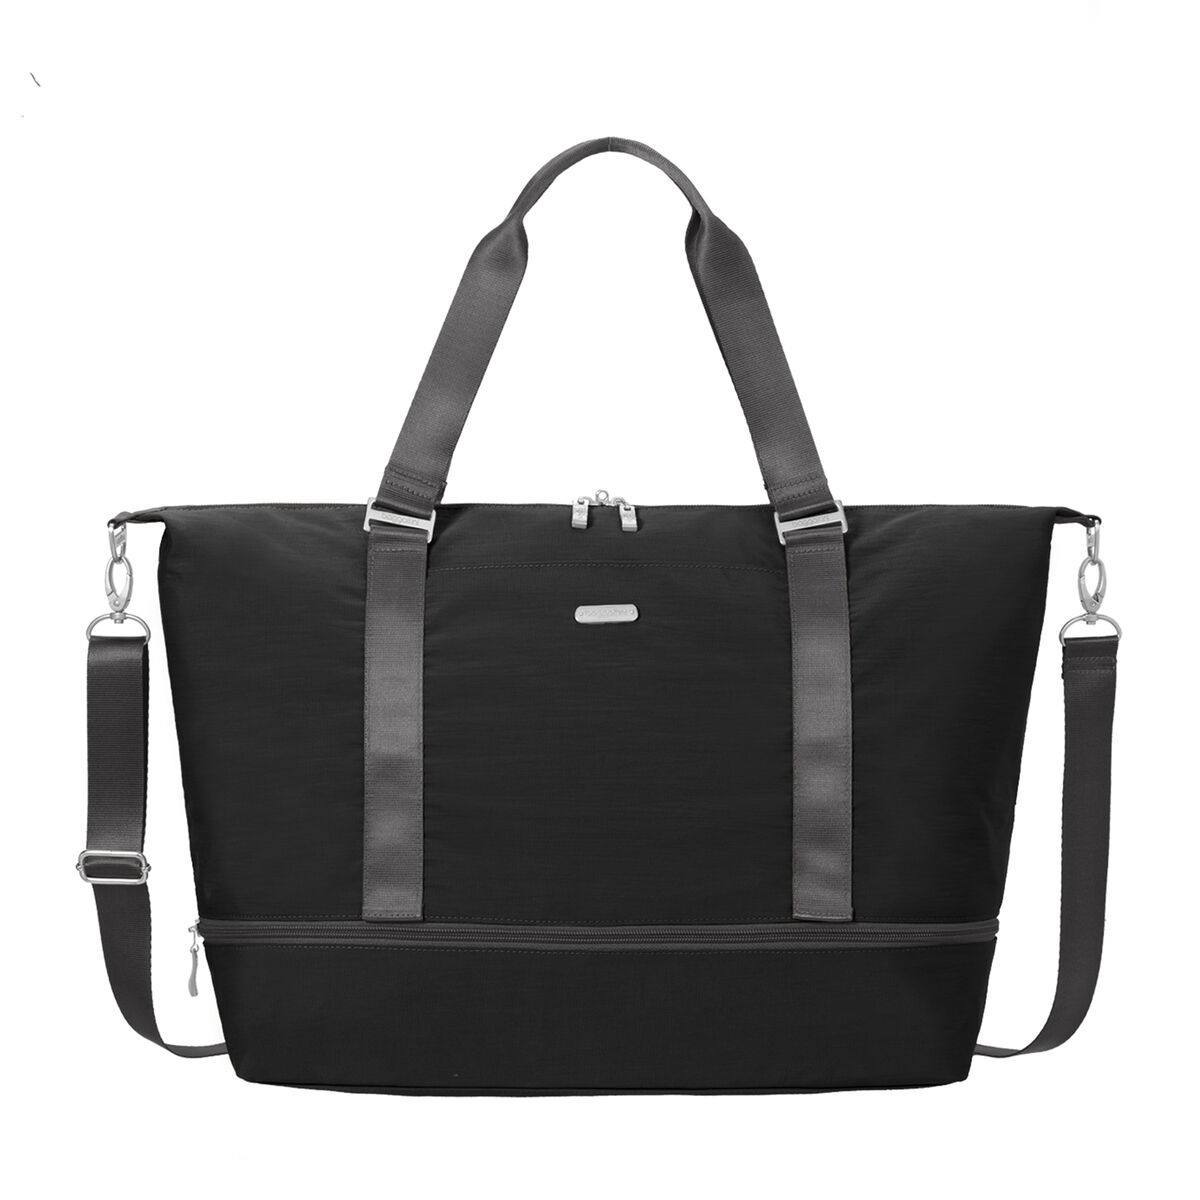 expandable carry on duffel bag